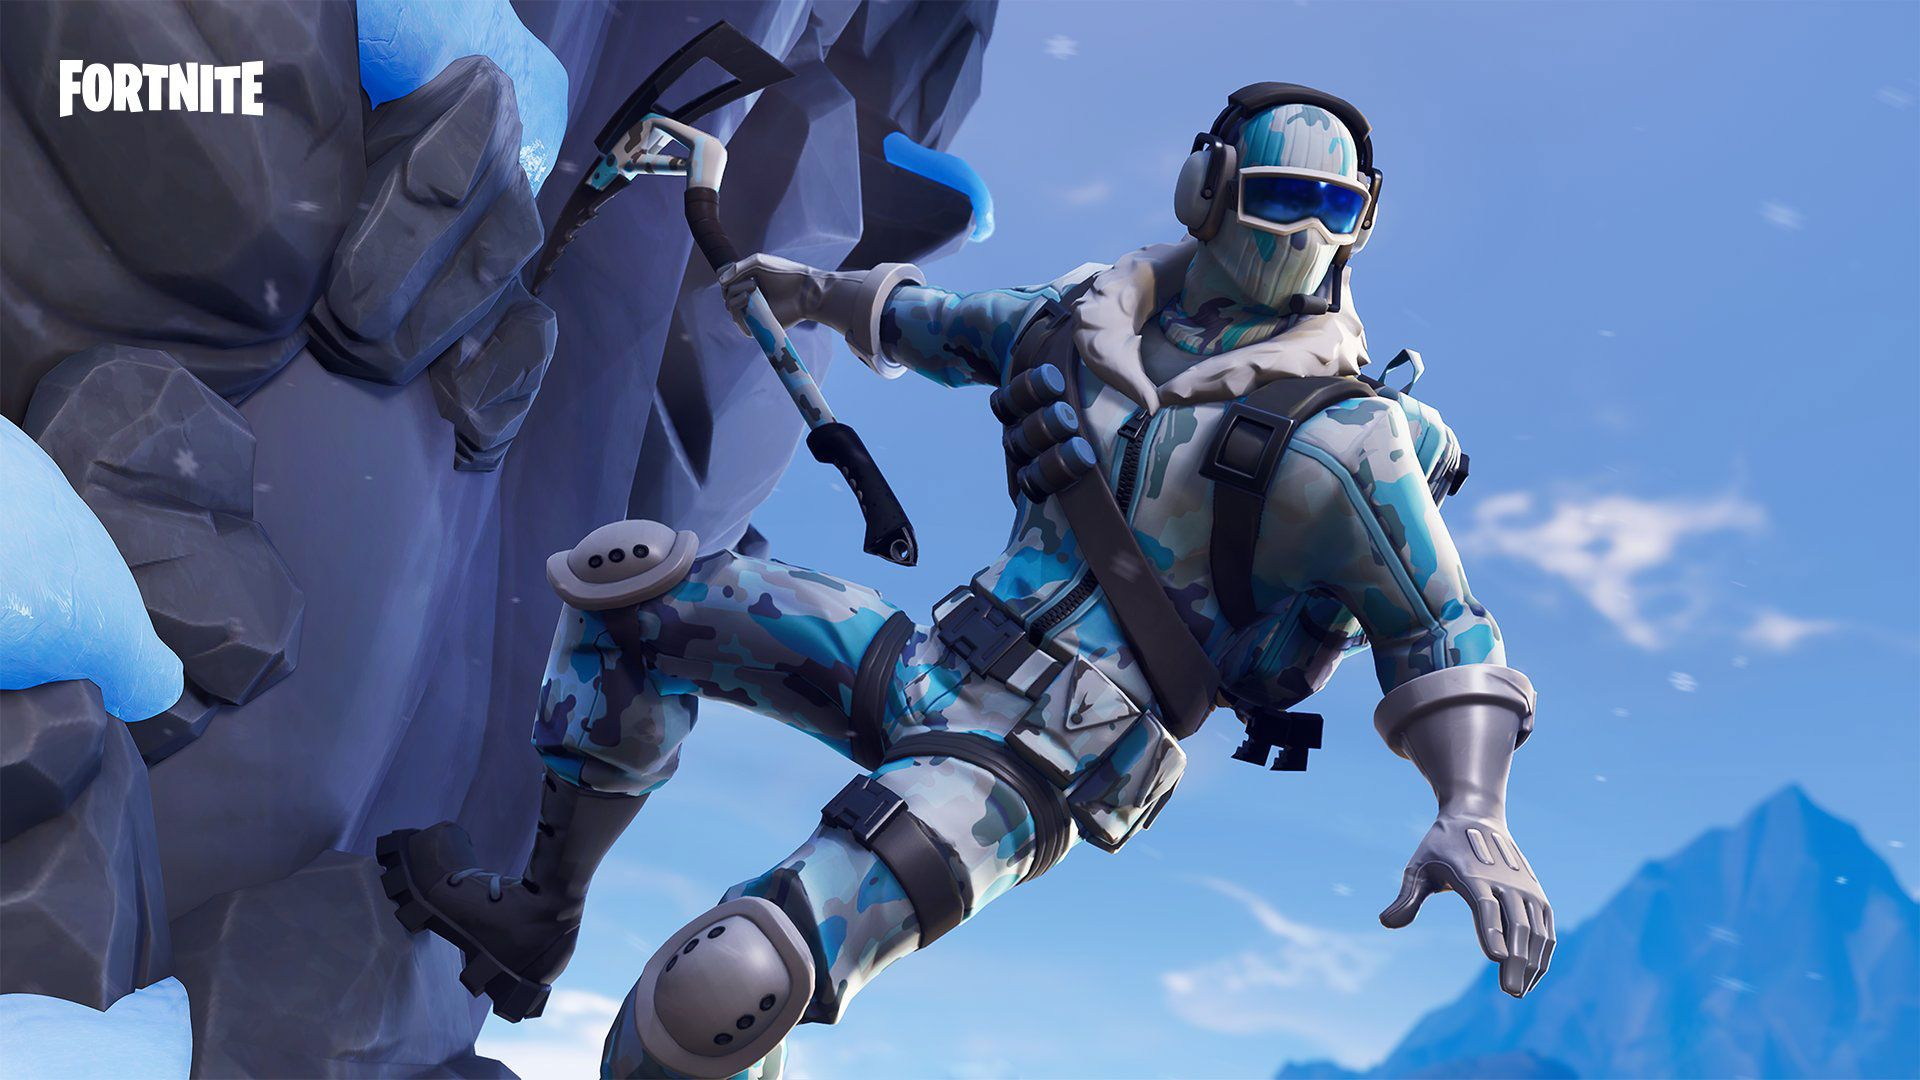 Image Result For Fortnite Frostbite Wallpaper Fortnite Epic Games Season 7